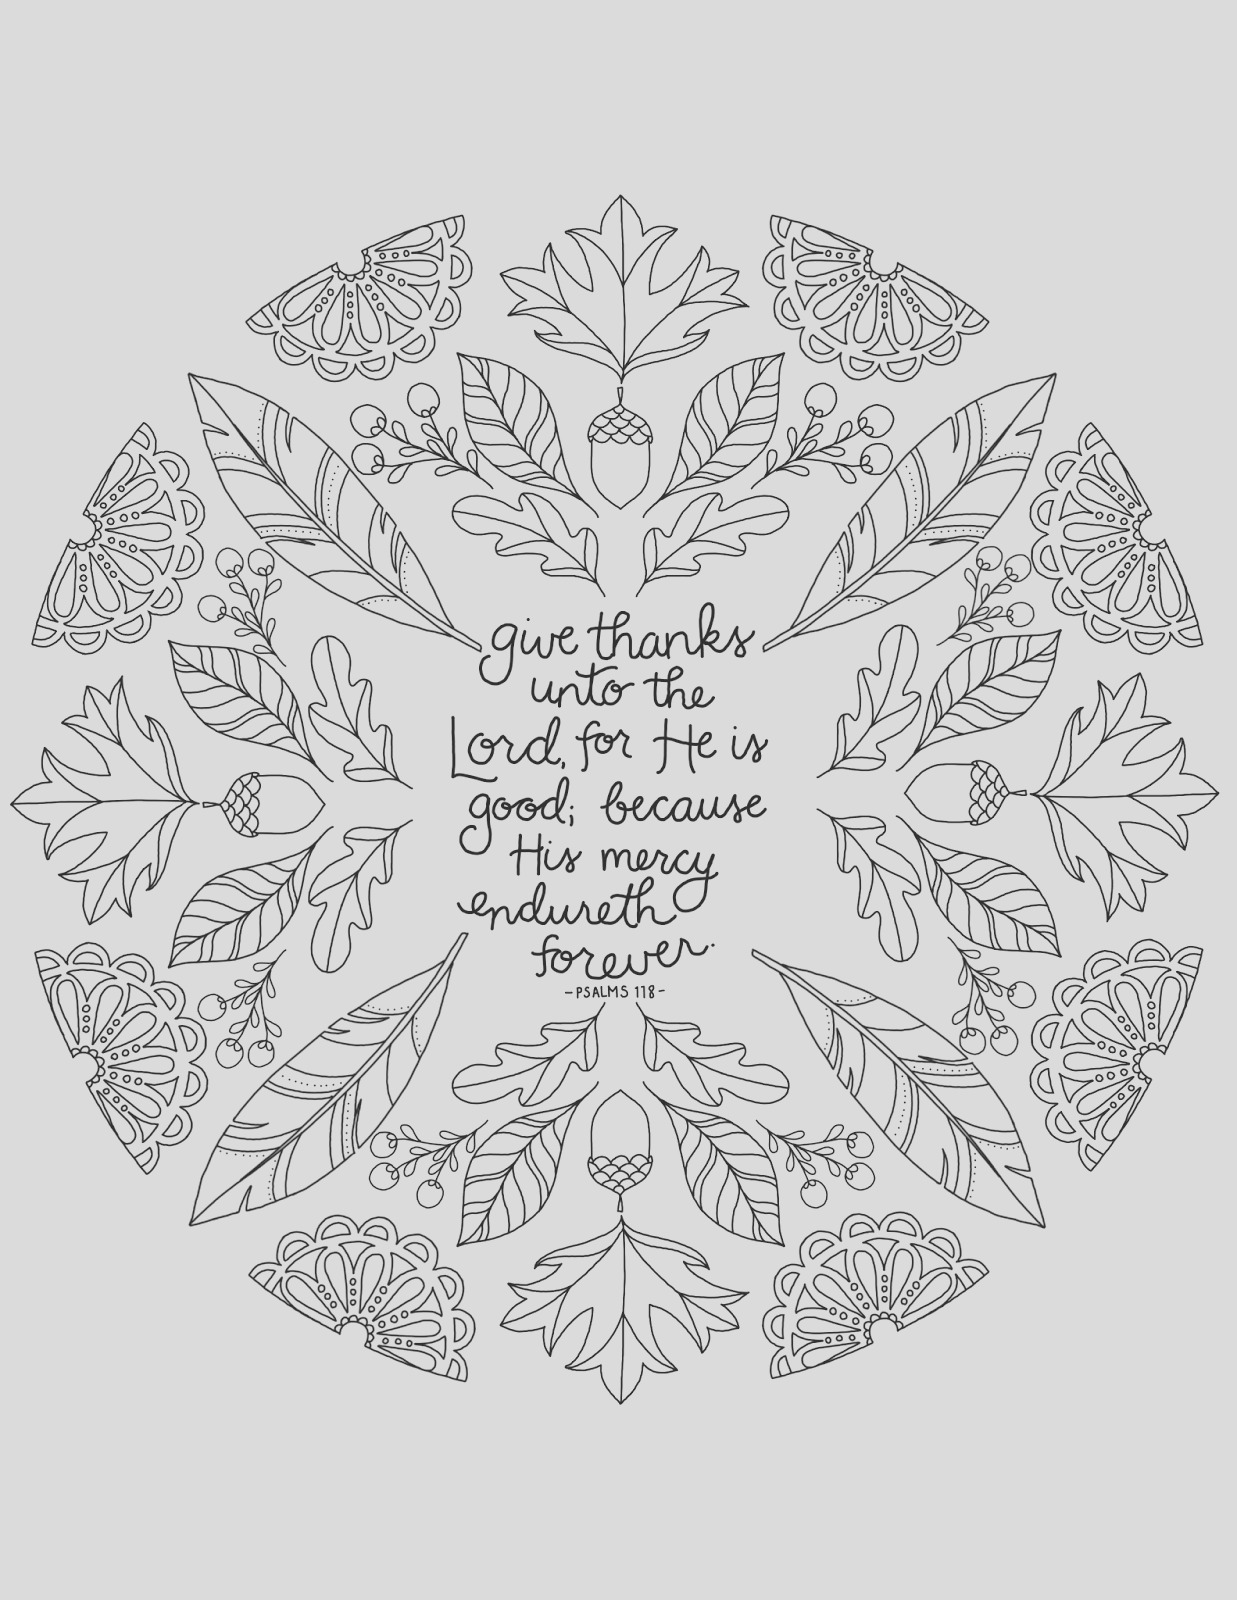 give thanks unto lord free thanksgiving